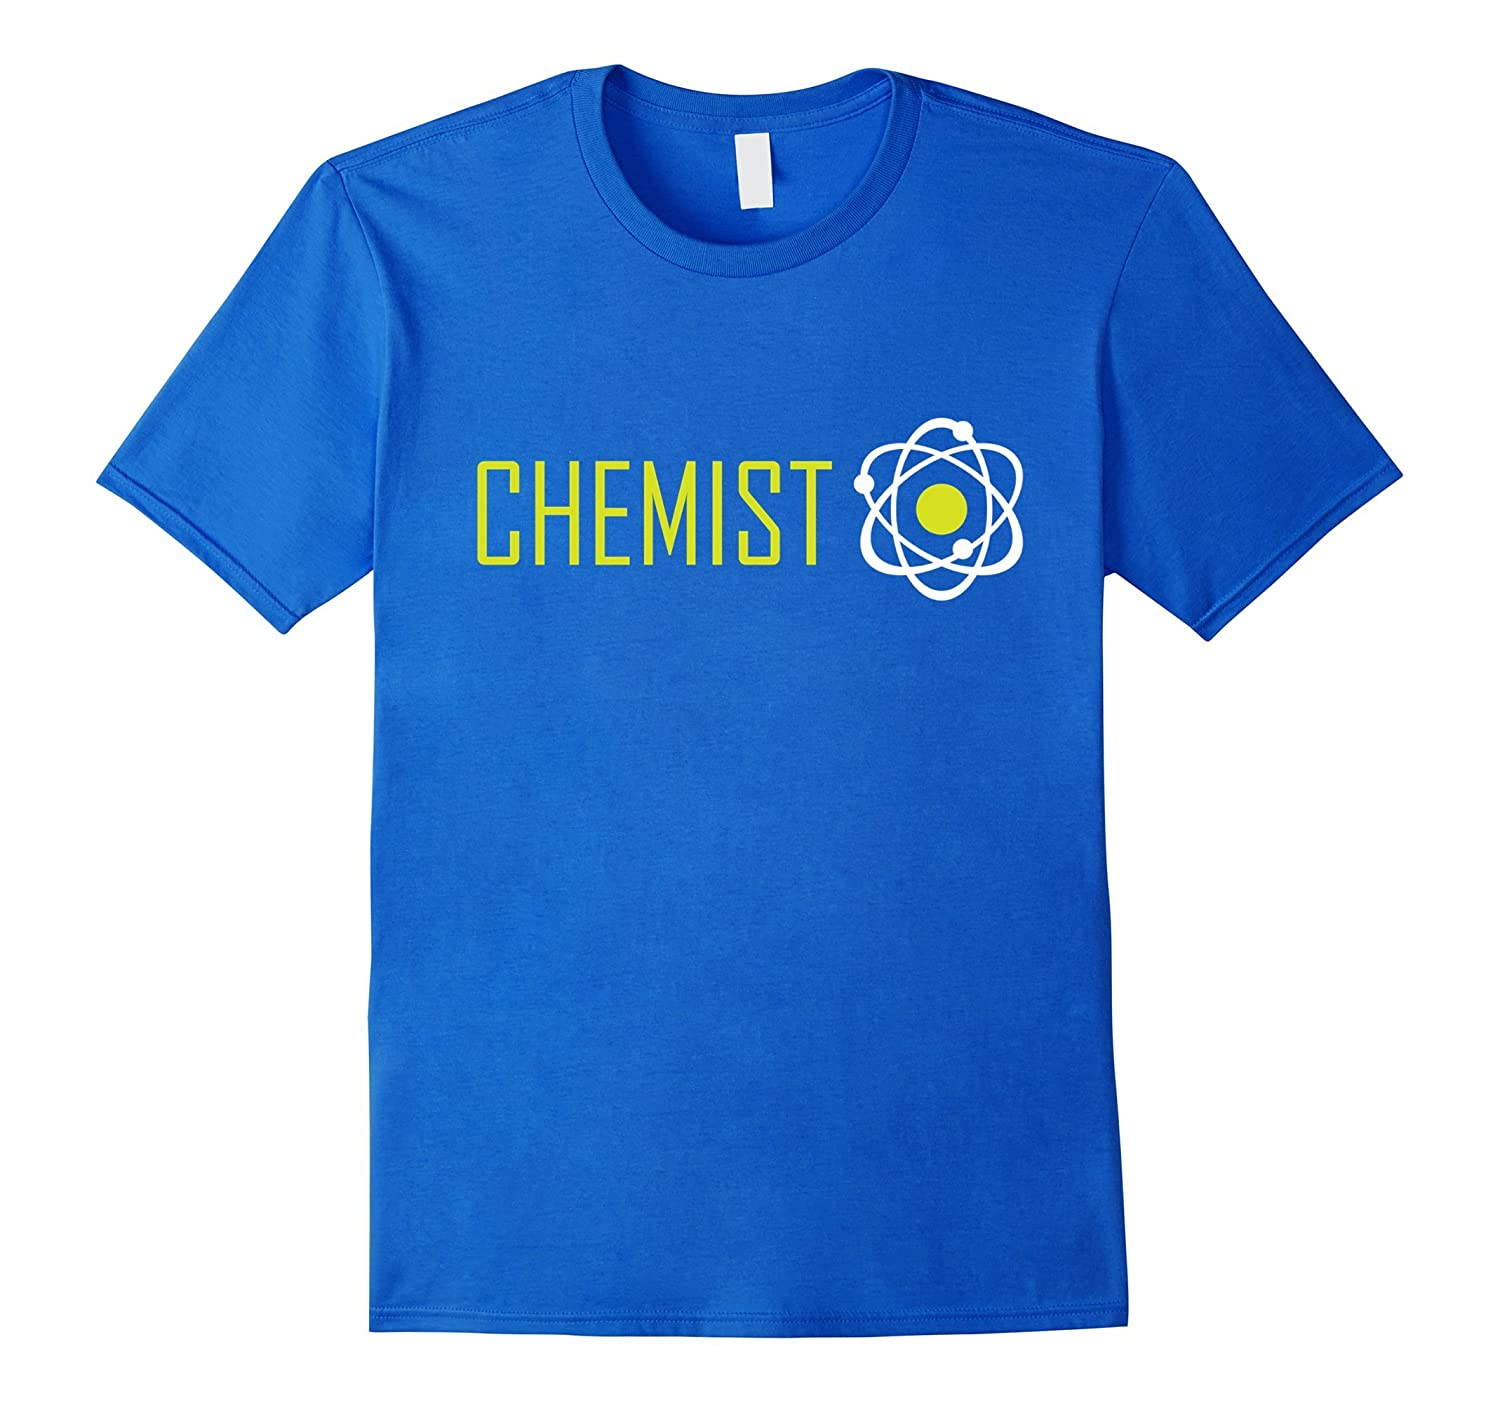 March Holidays In Bolivia: Scientist Chemist Shirt March For Science Atom Protest-TD